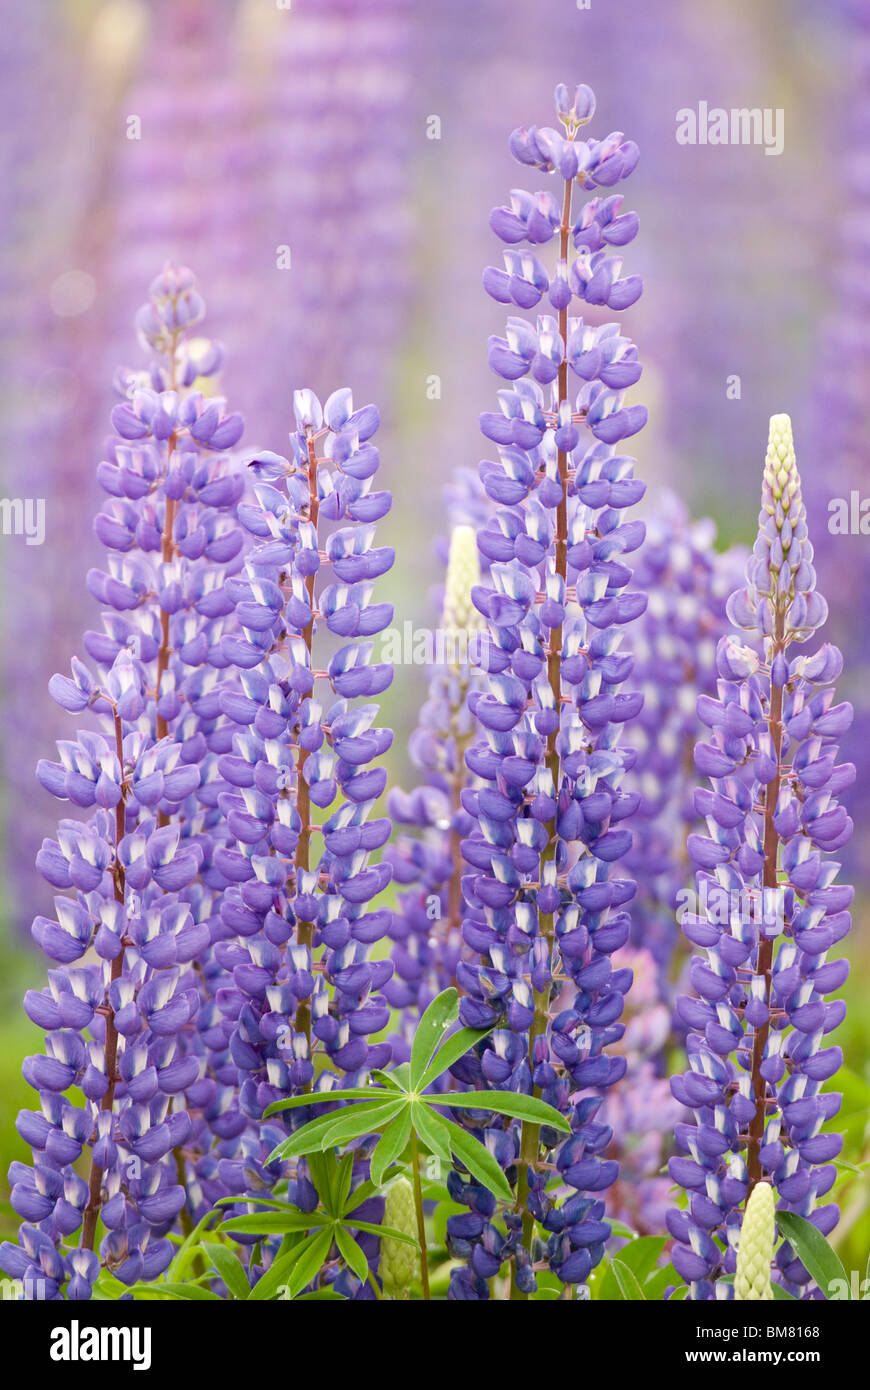 Lupin Lupinus polyphyllus Russell ou Lupin, Nouvelle-Zélande Banque D'Images